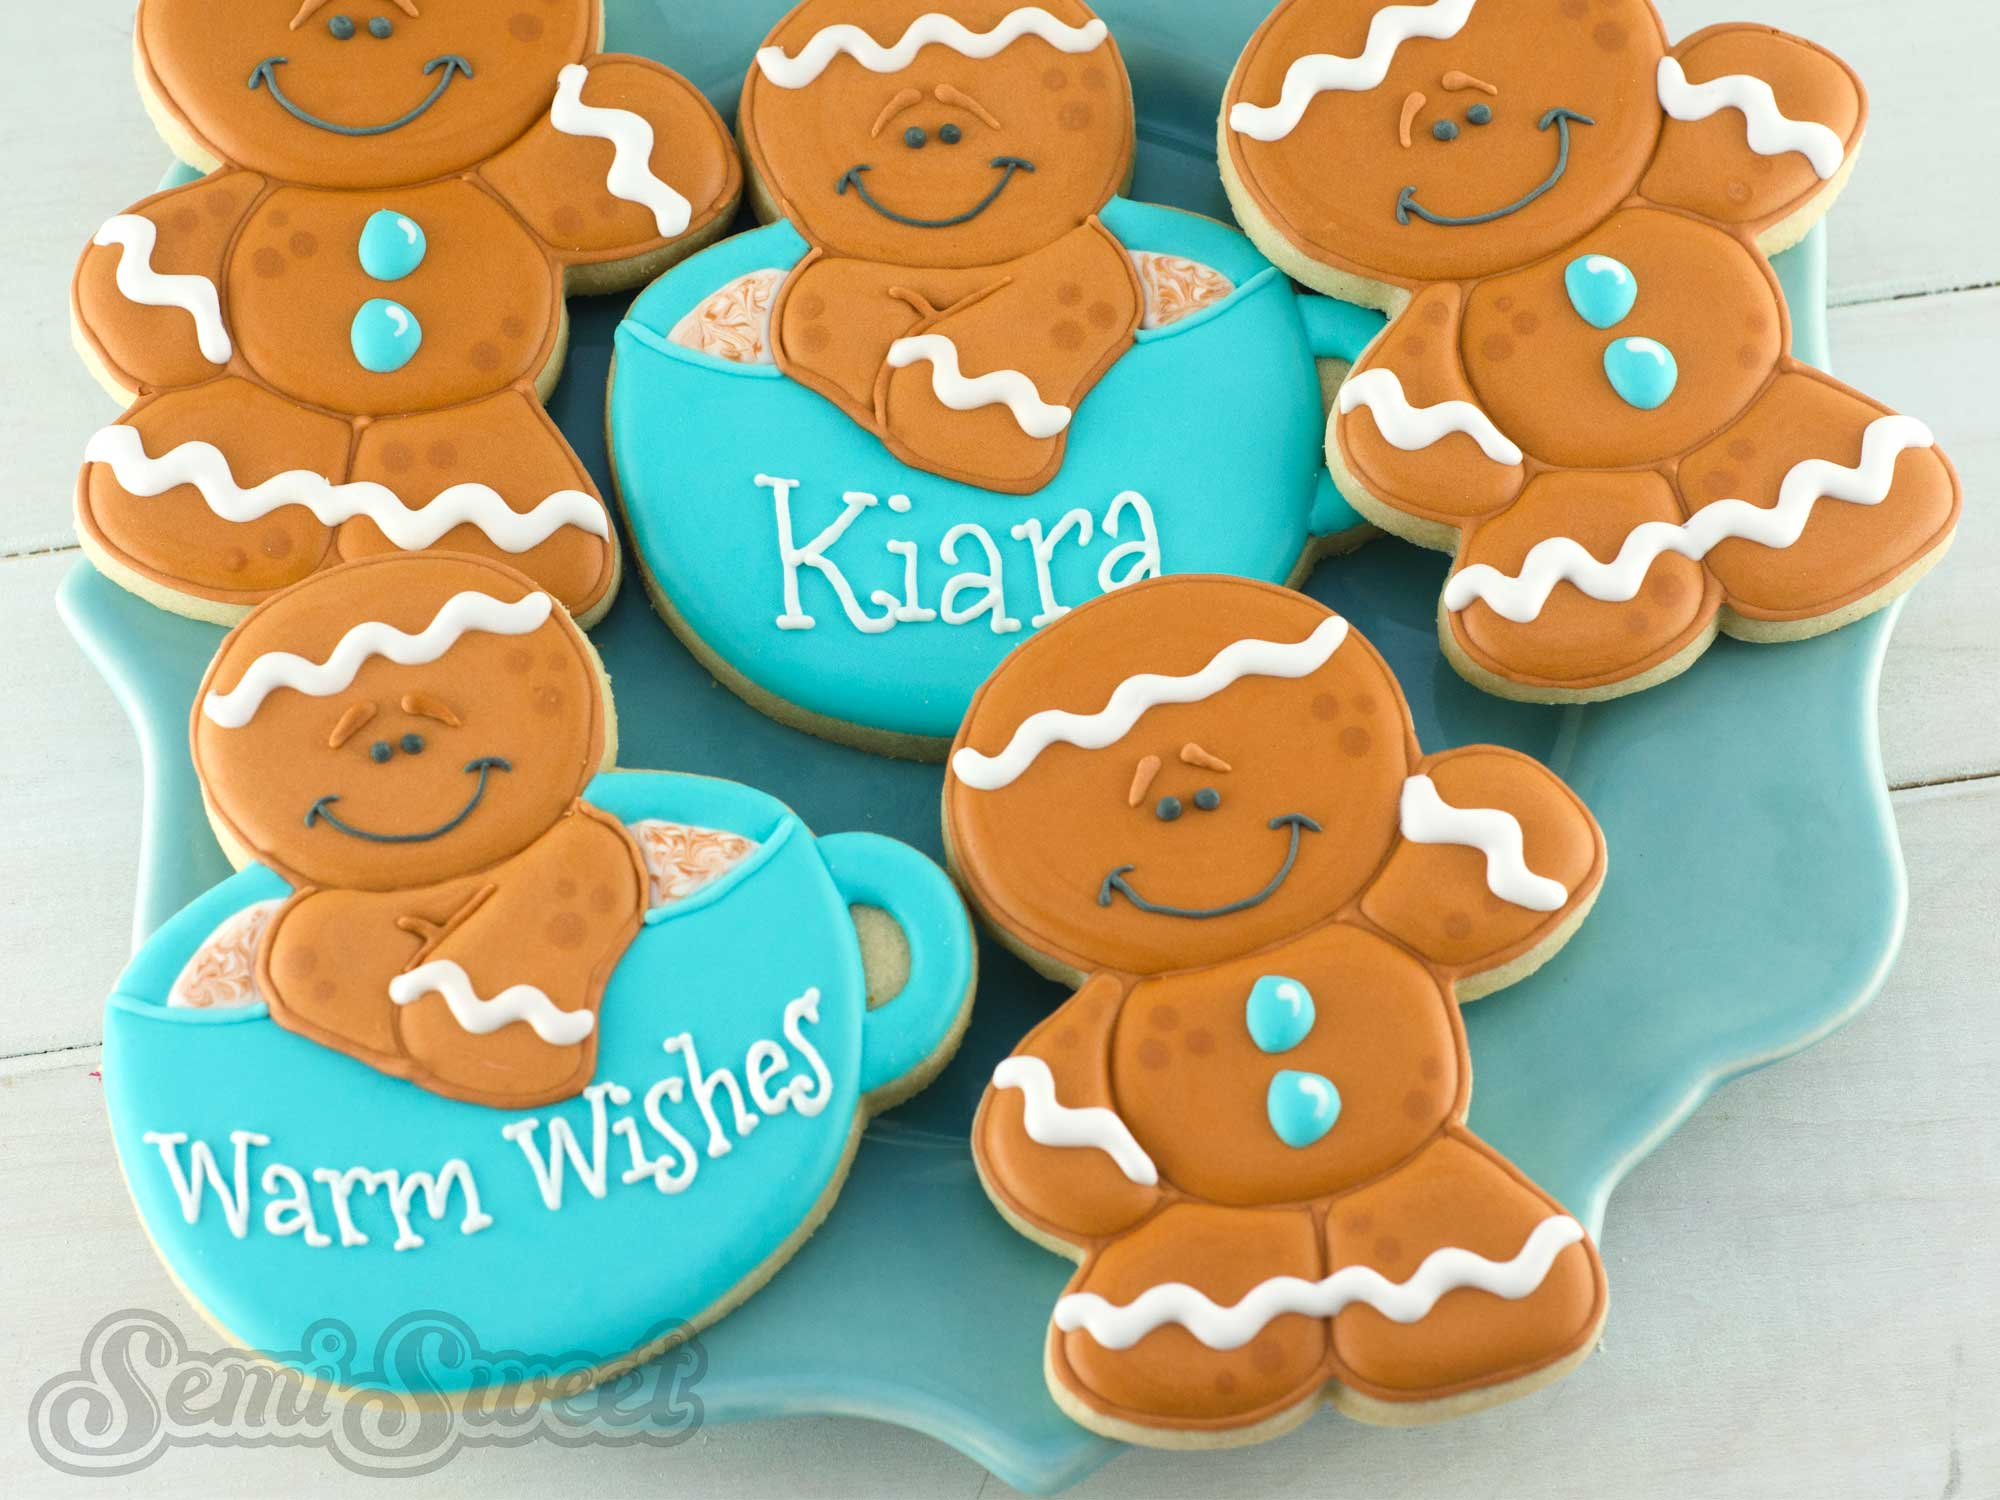 How to Make Decorated Gingerbread Man Cookies